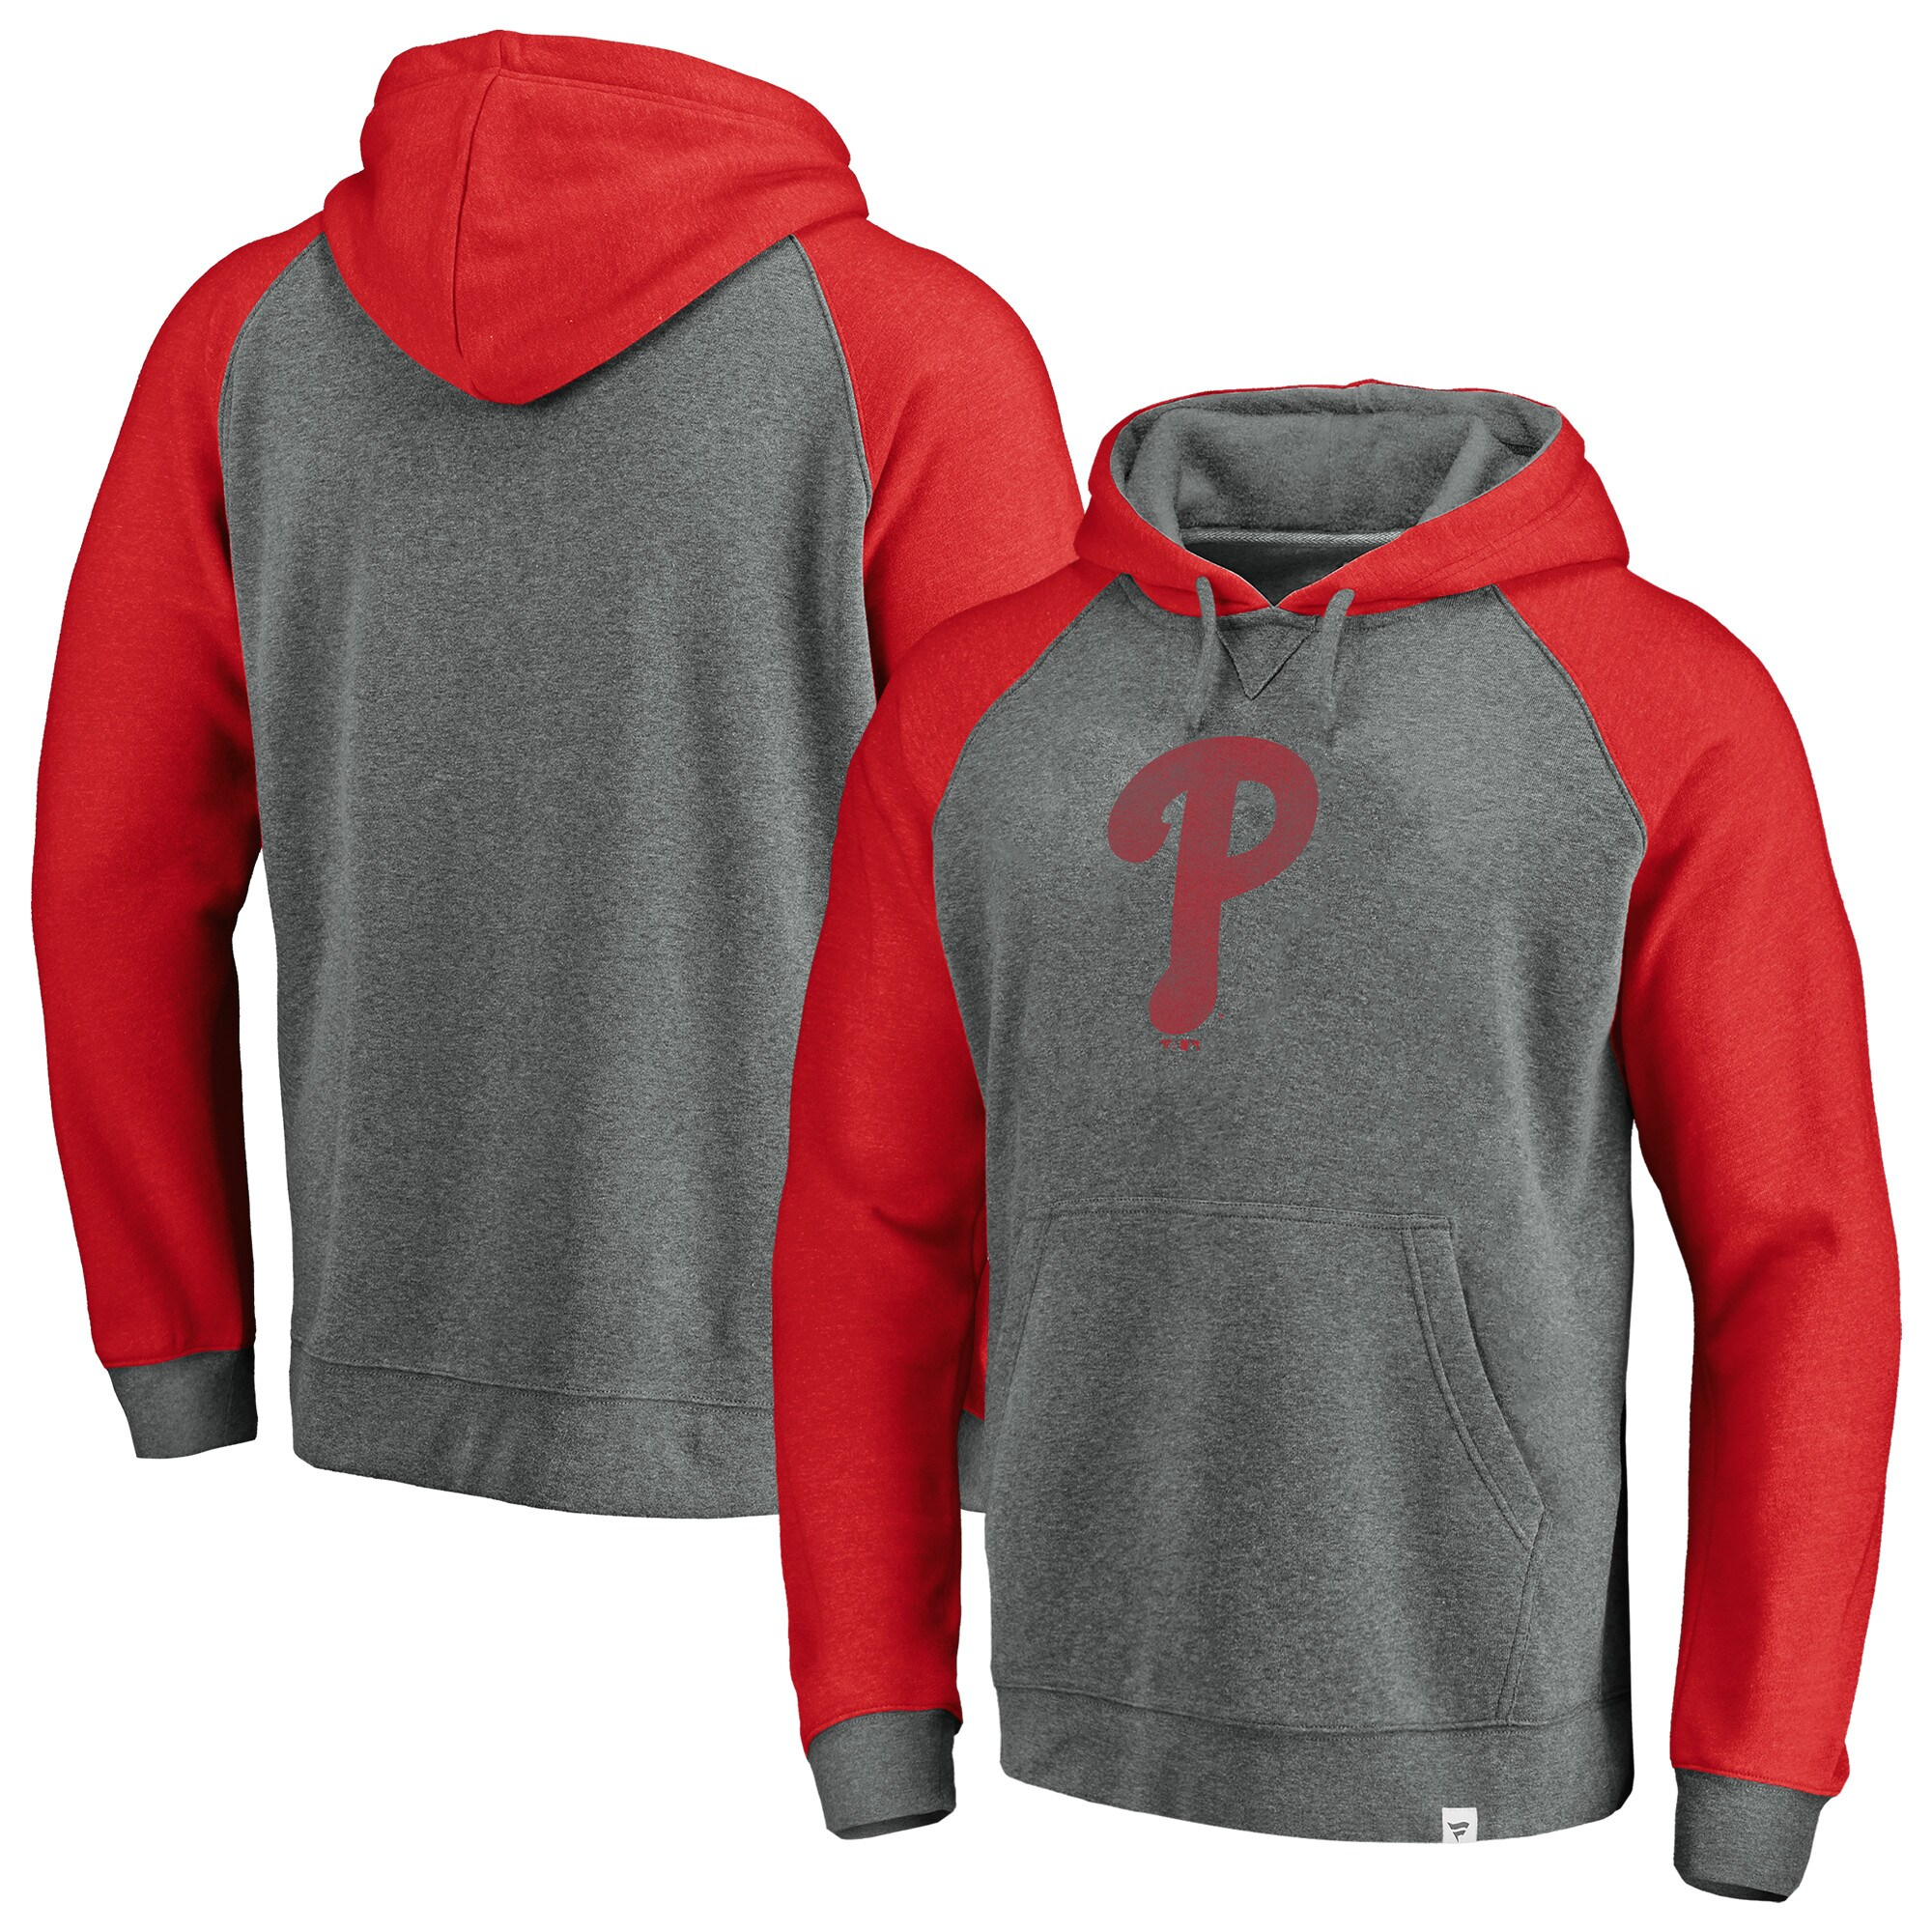 Philadelphia Phillies Fanatics Branded Team Logo Tri-Blend Pullover Hoodie - Gray/Red